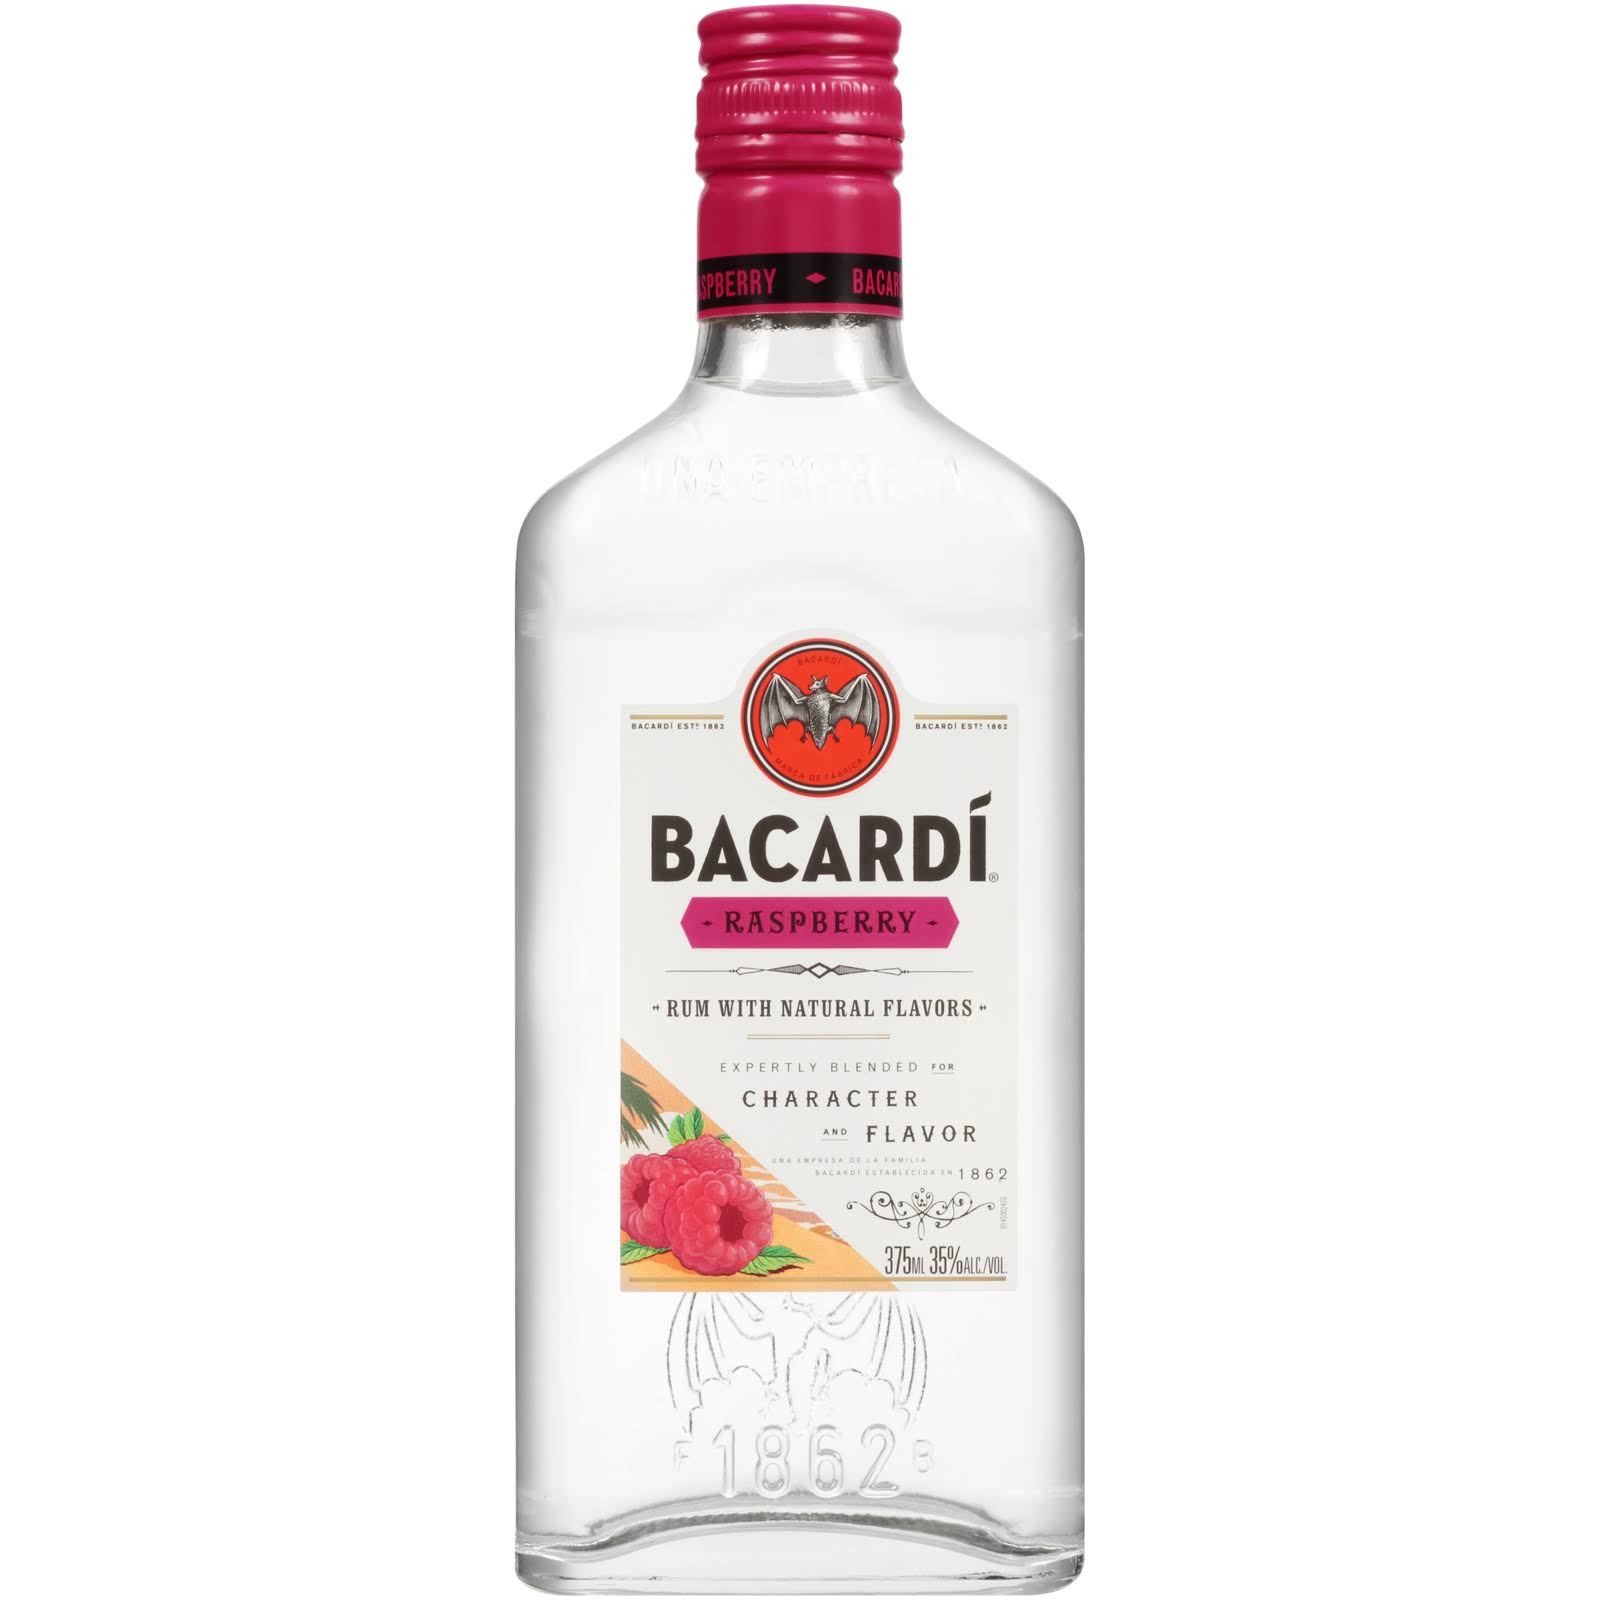 Bacardi Raspberry Rum 375ml